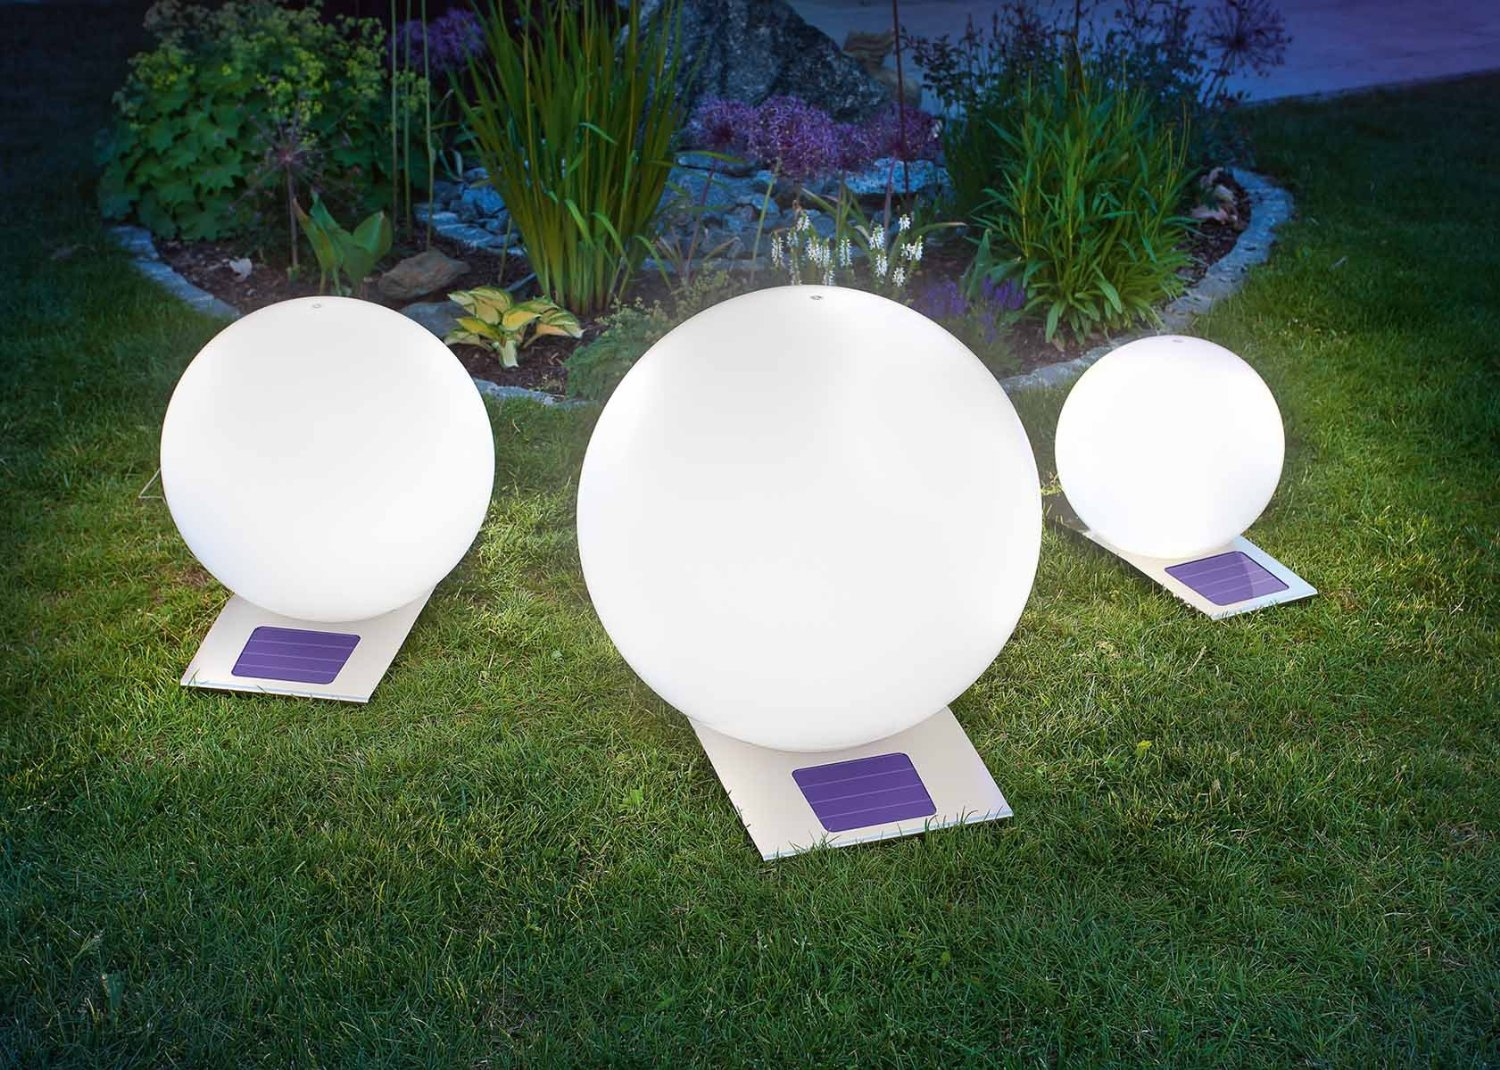 Illuminer son jardin gr ce la technologie led loisir Lumiere led jardin